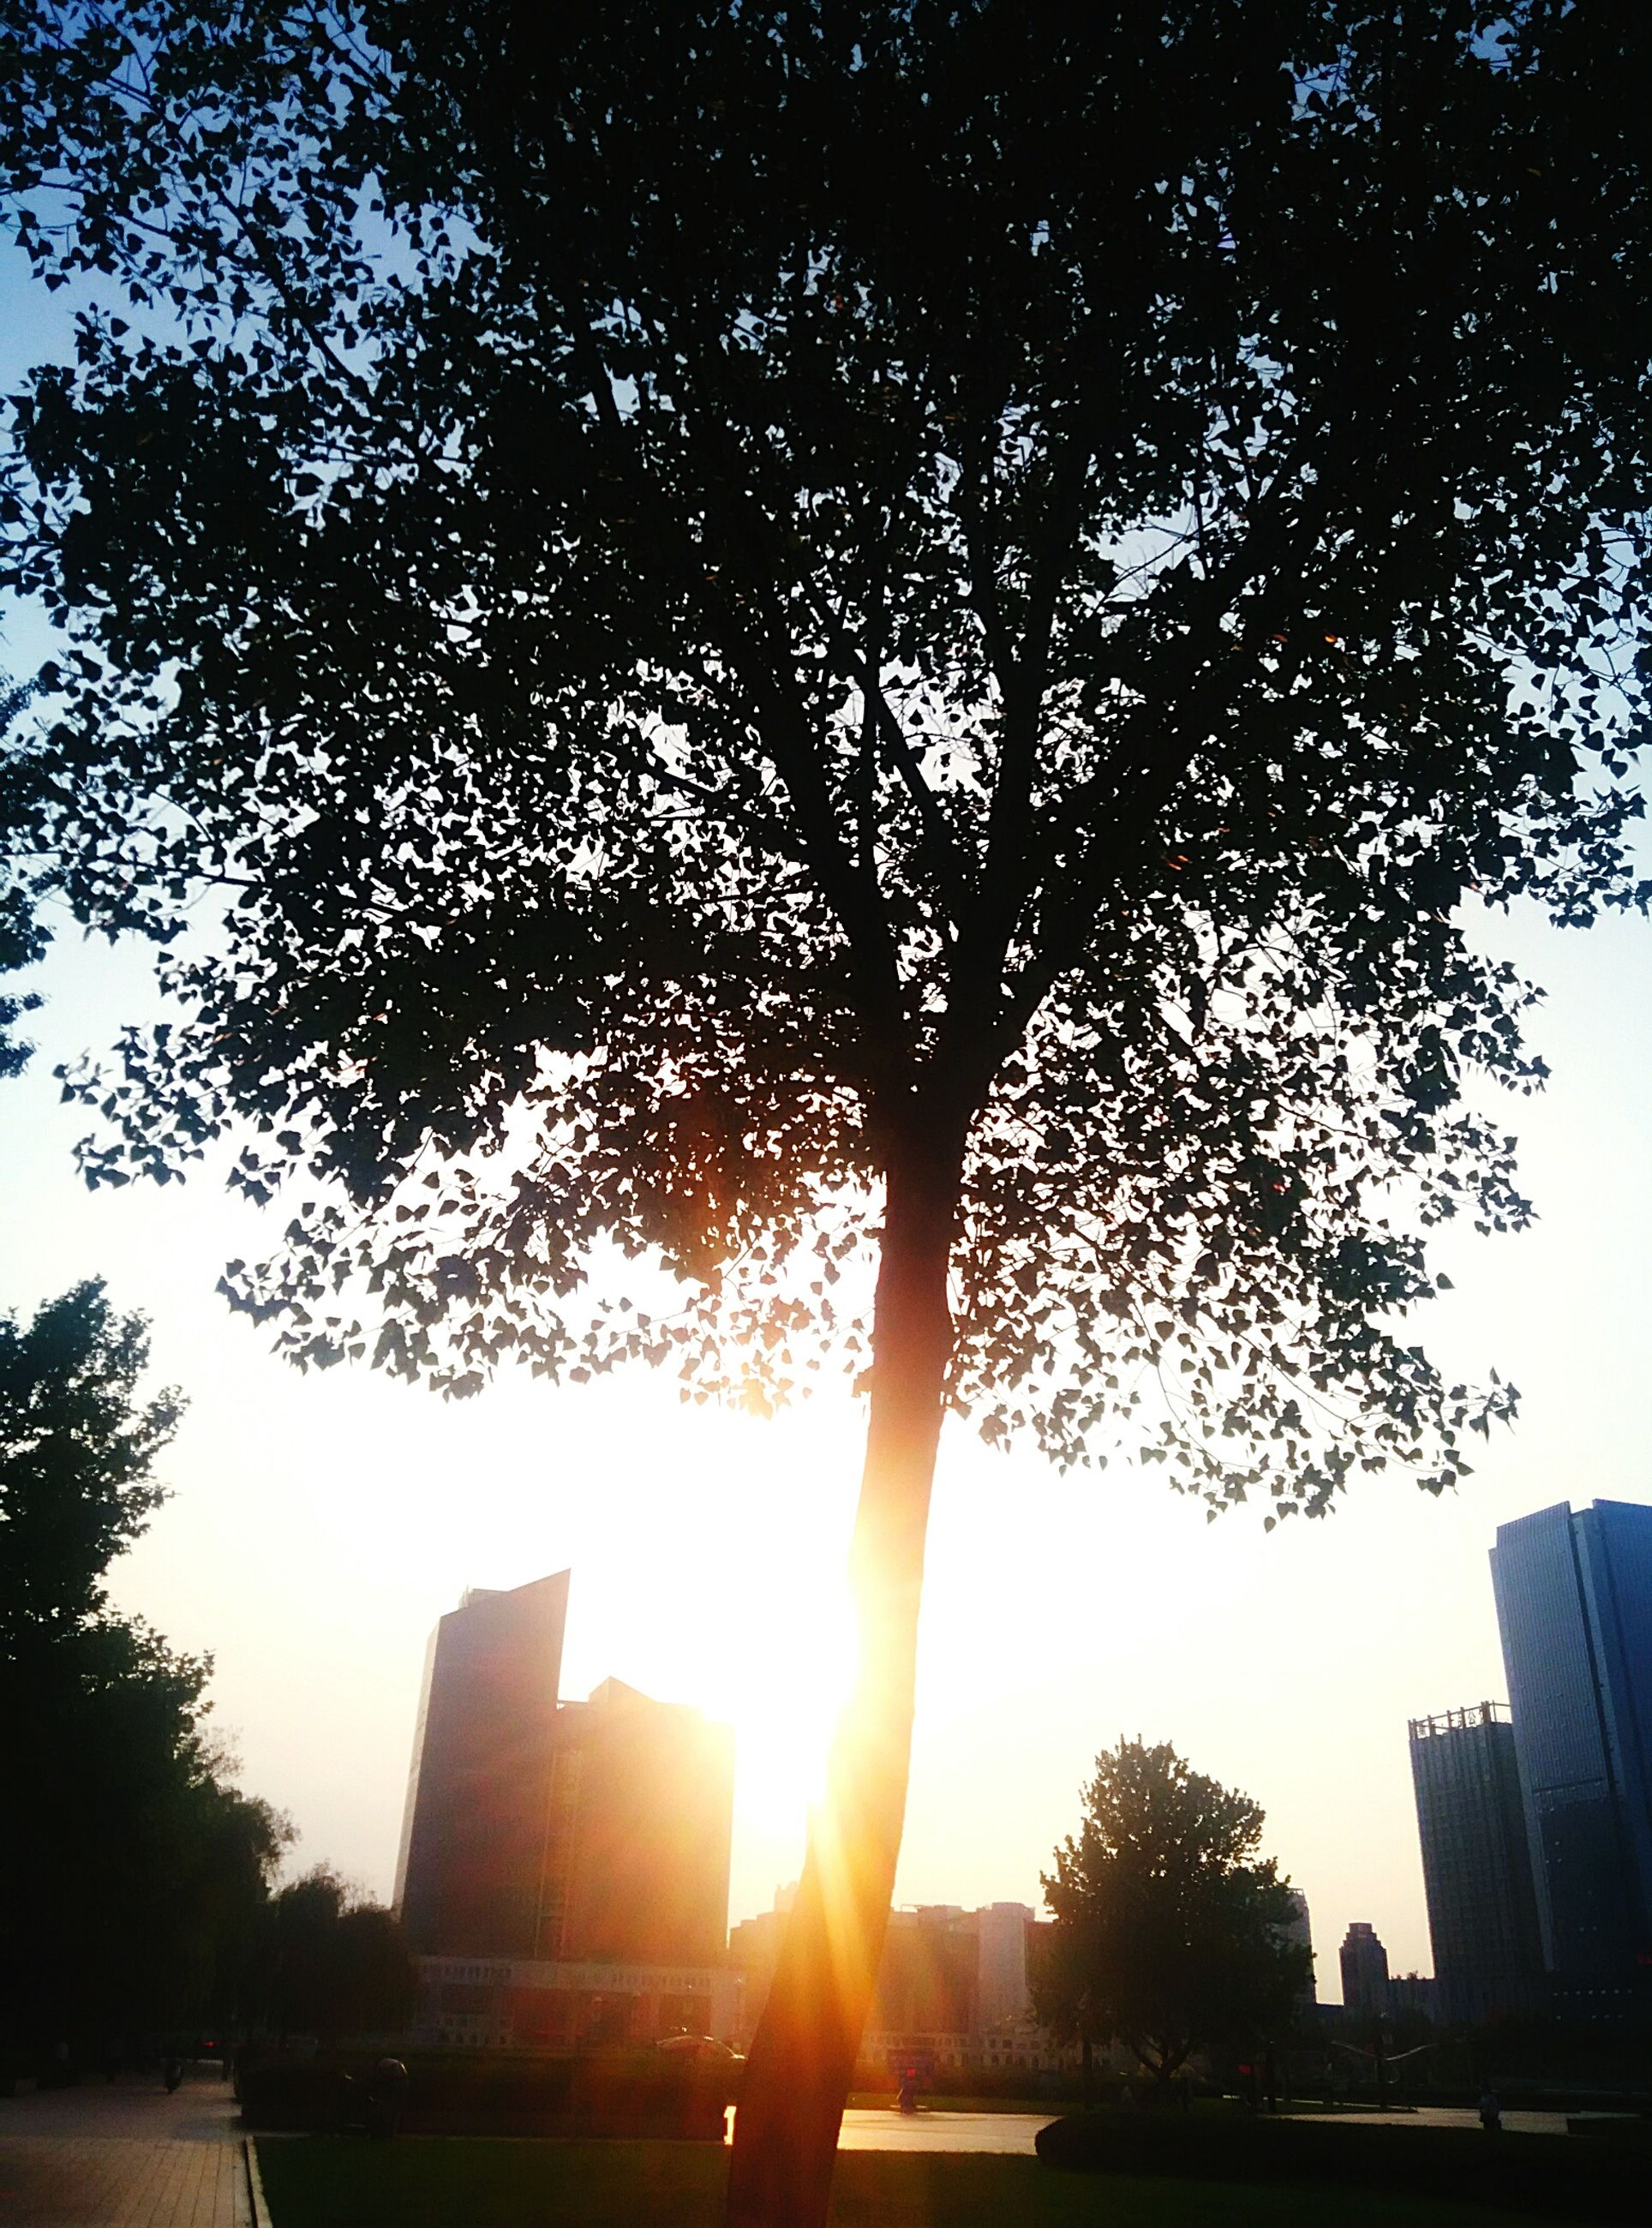 sun, tree, building exterior, architecture, built structure, sunlight, sunset, sunbeam, silhouette, lens flare, city, branch, sky, growth, low angle view, back lit, nature, outdoors, no people, skyscraper